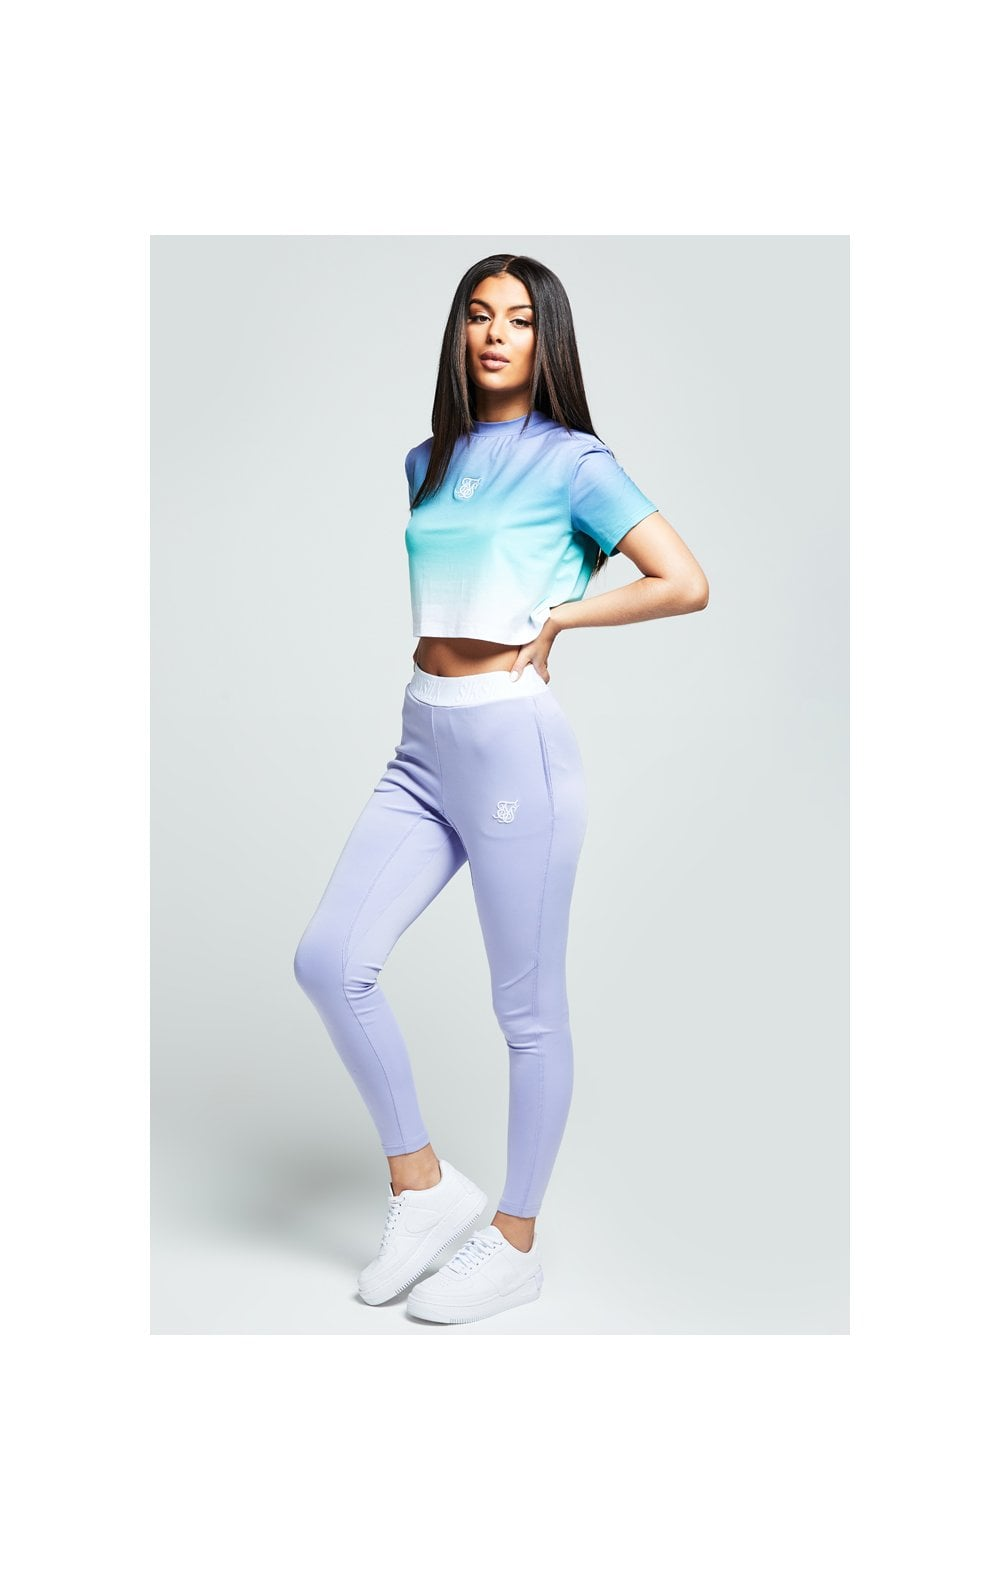 Load image into Gallery viewer, SikSilk Lilac Haze Tee - Lilac, Turquoise & White (3)